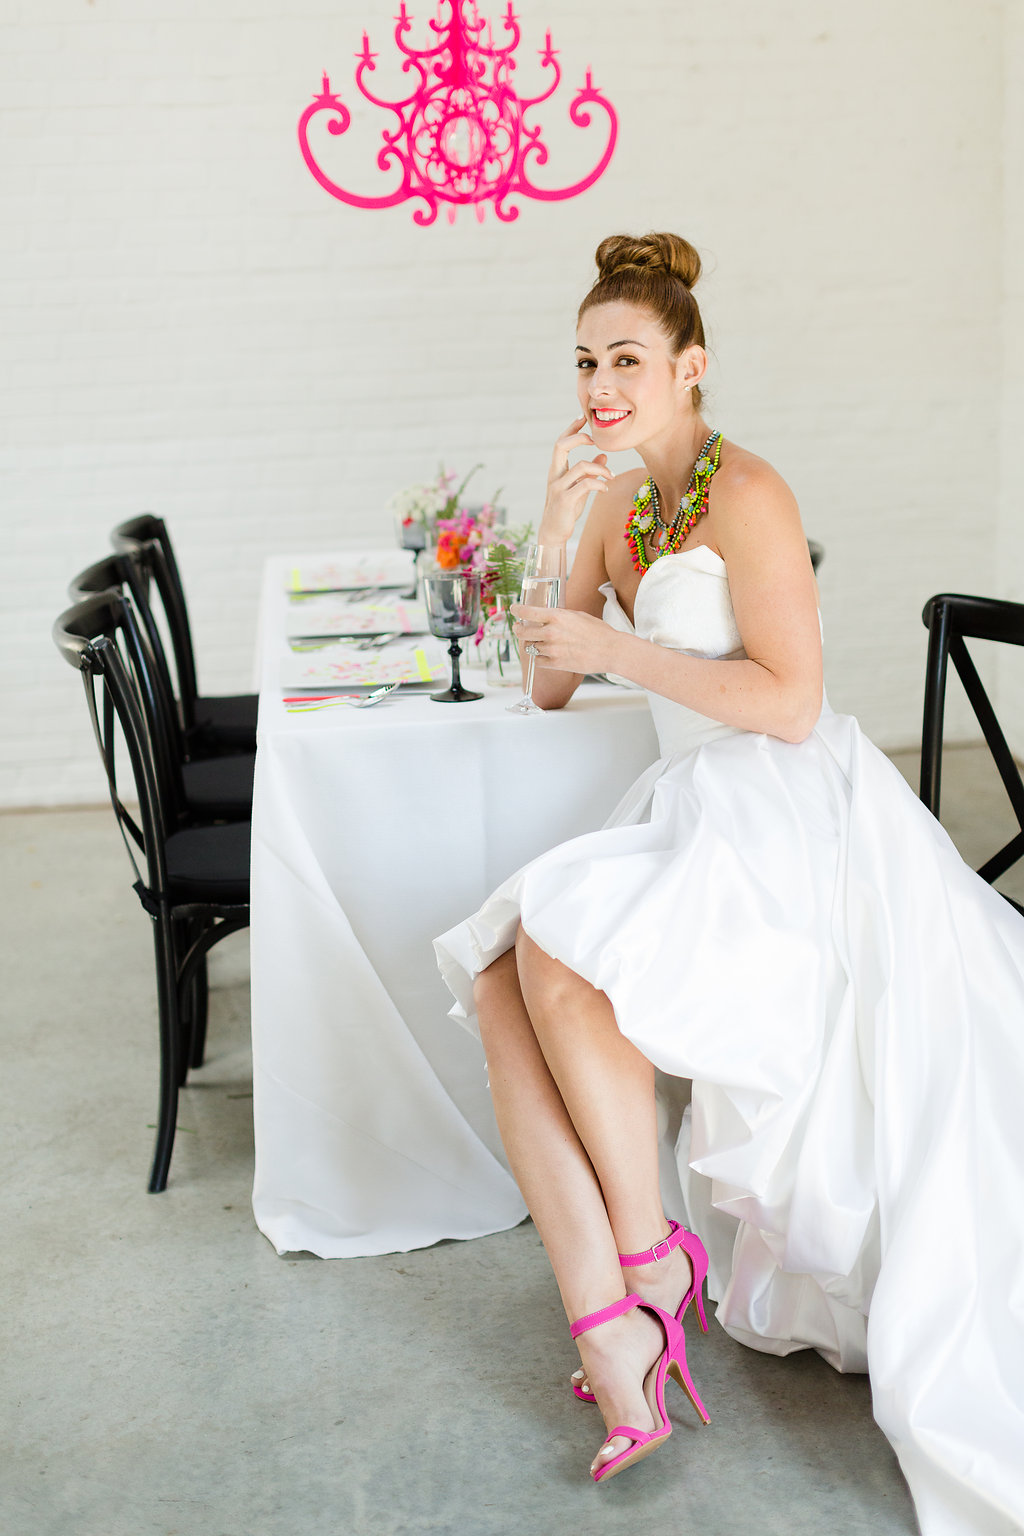 Neon Wedding Inspiration with Decor by Chandelier by NK / photo by Jessica Haley Photography